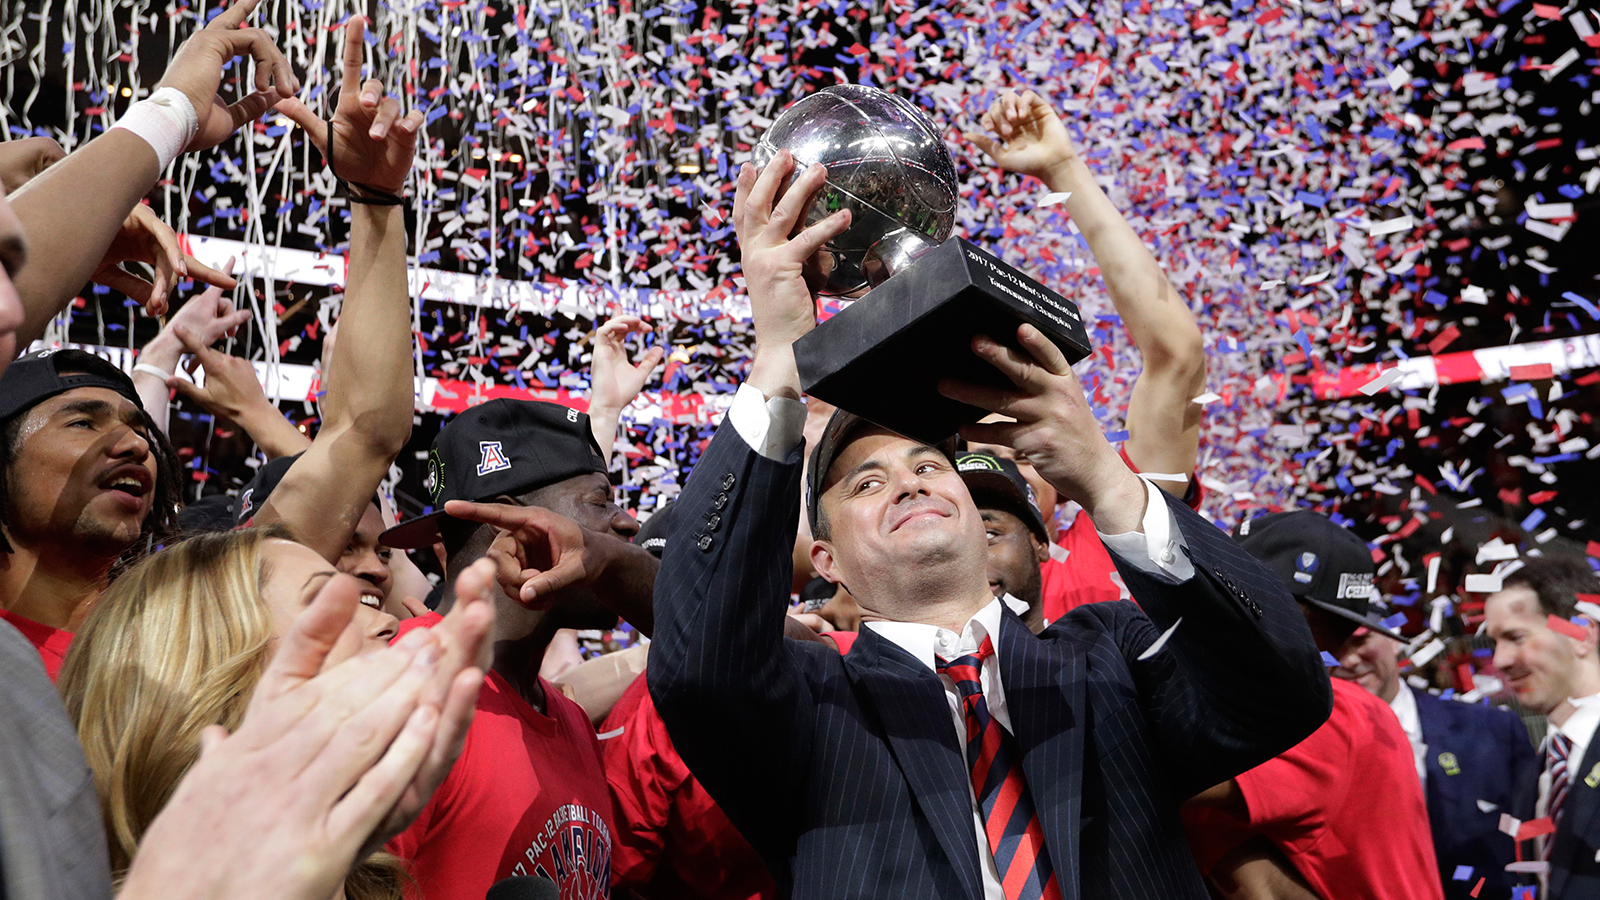 Arizona coach Sean Miller holds up the trophy after Arizona defeated Oregon 83-80 in an NCAA college basketball game for the championship of the Pac-12 men's tournament Saturday, March 11, 2017, in Las Vegas. (AP Photo/John Locher)